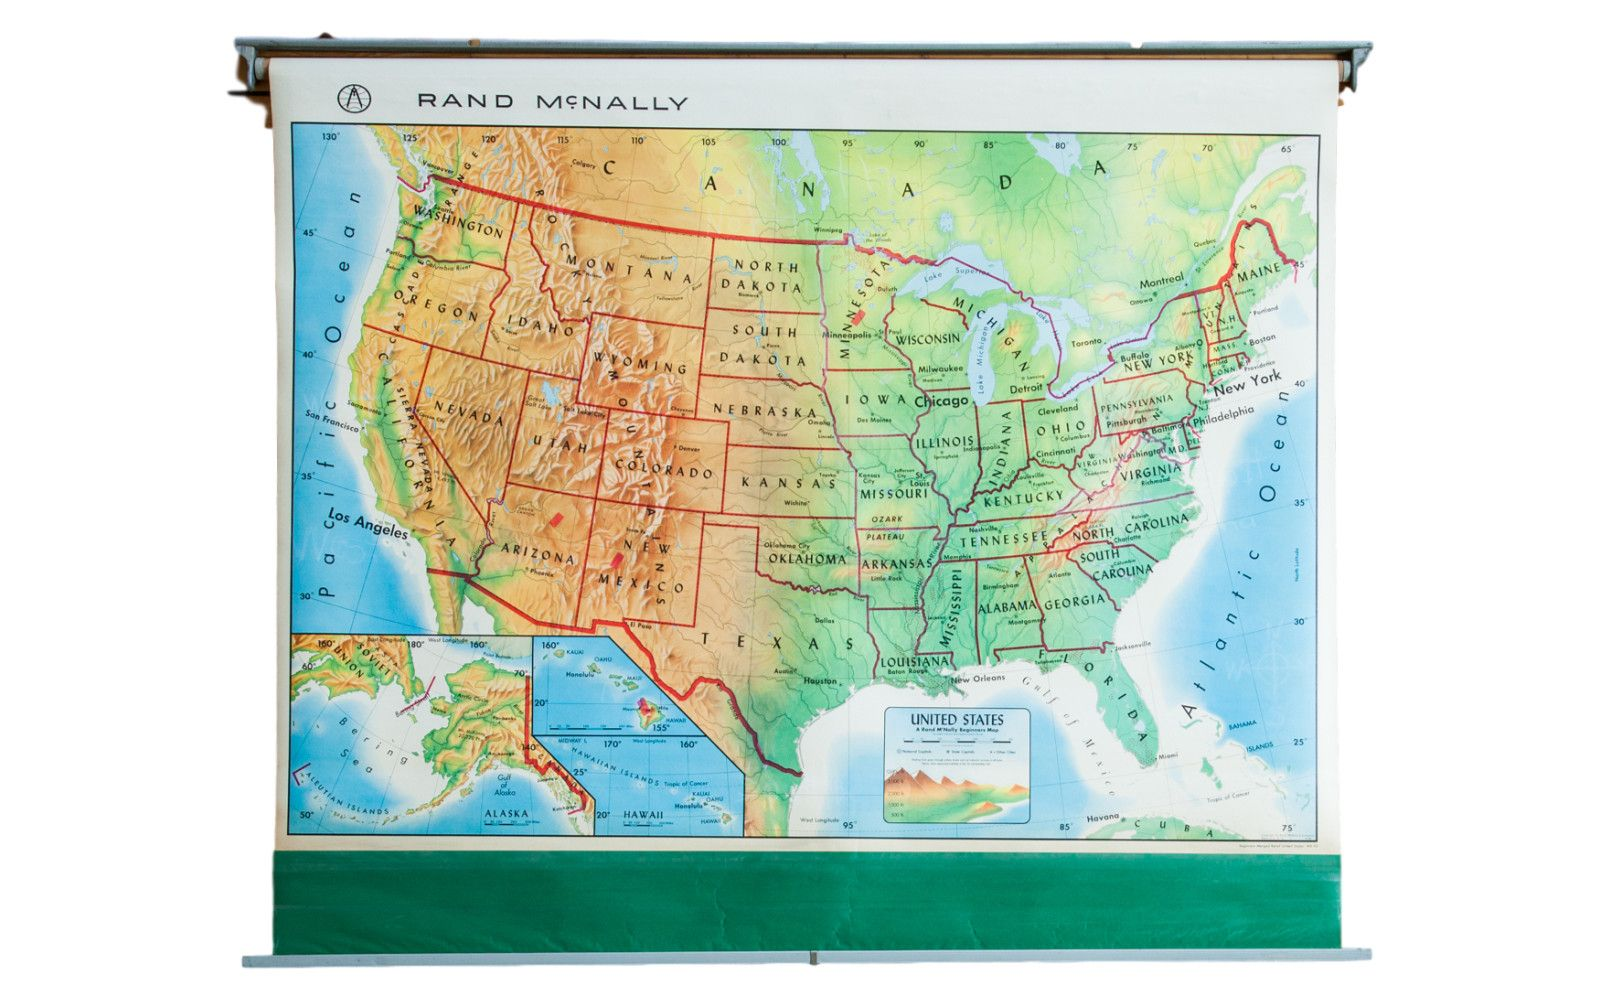 USED WORLD US UNITED STATES USA ALASKA Pull Down Classroom 3 Map Rand McNally